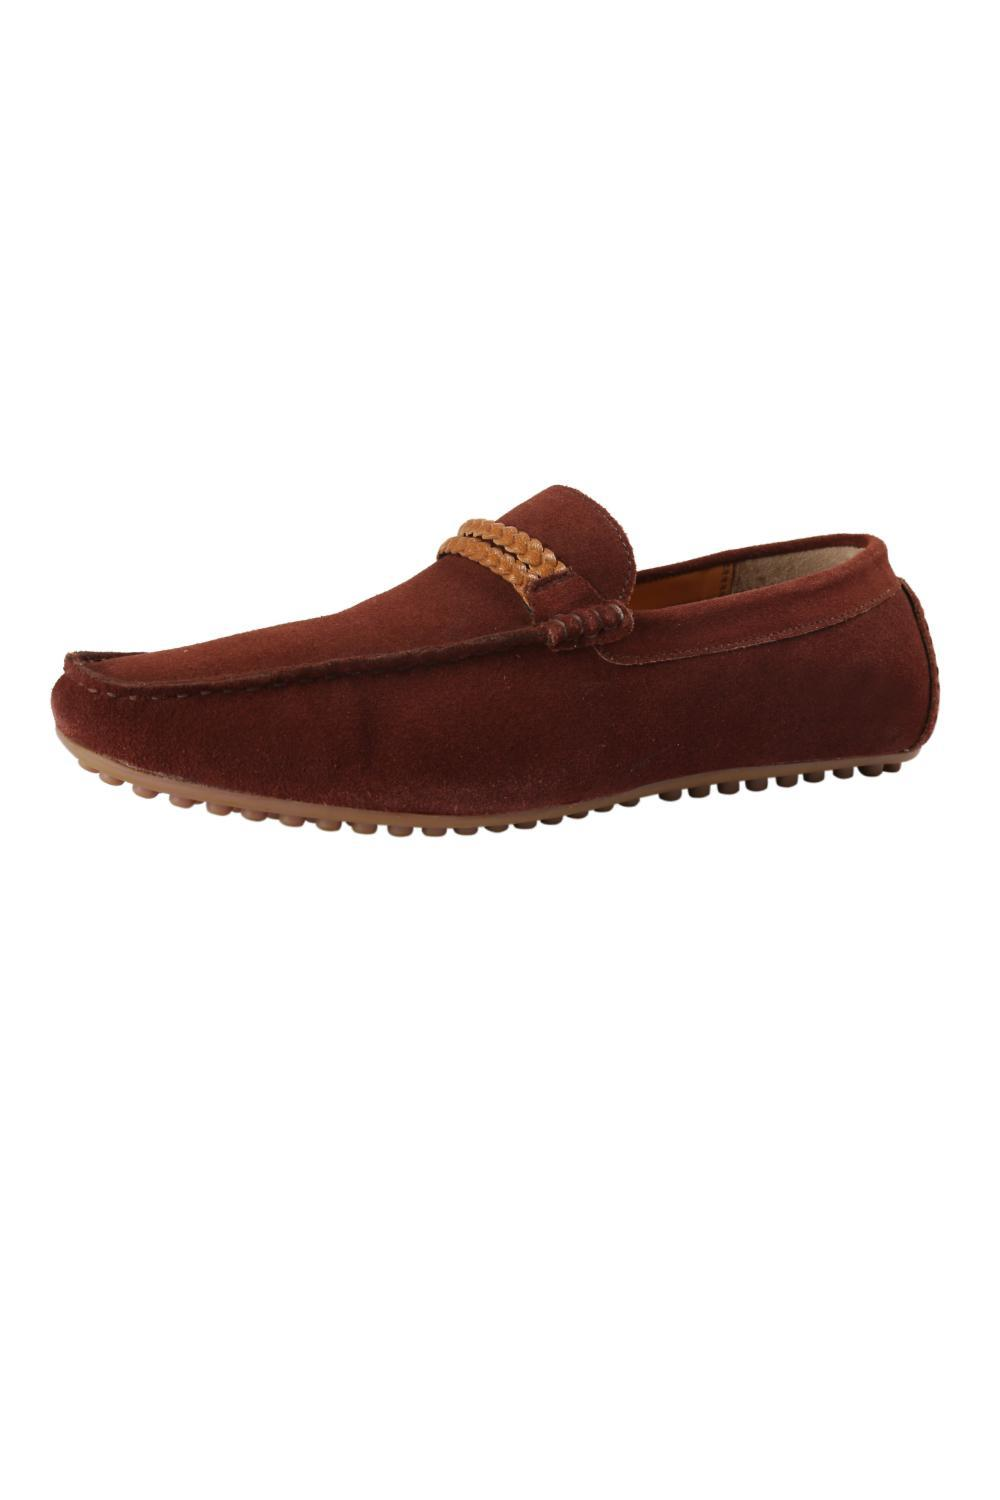 Allen Solly Brown Loafers for Men